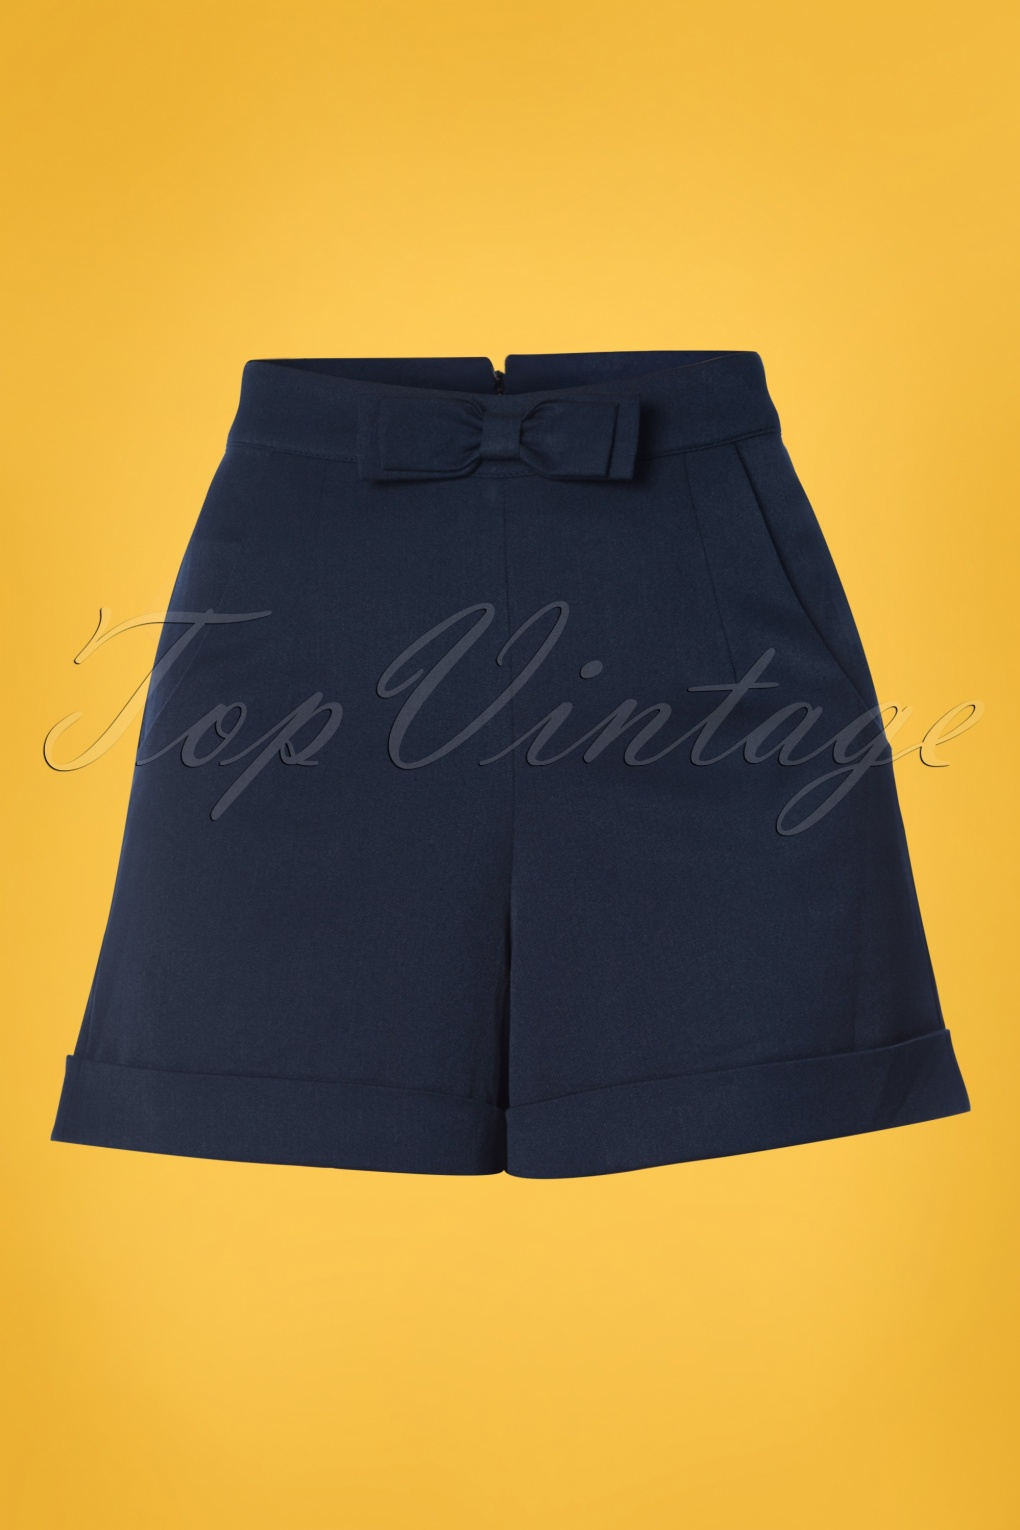 Vintage High Waisted Shorts | 1950s Pinup, Rockabilly Shorts 50s Betsey Shorts in Navy £33.73 AT vintagedancer.com